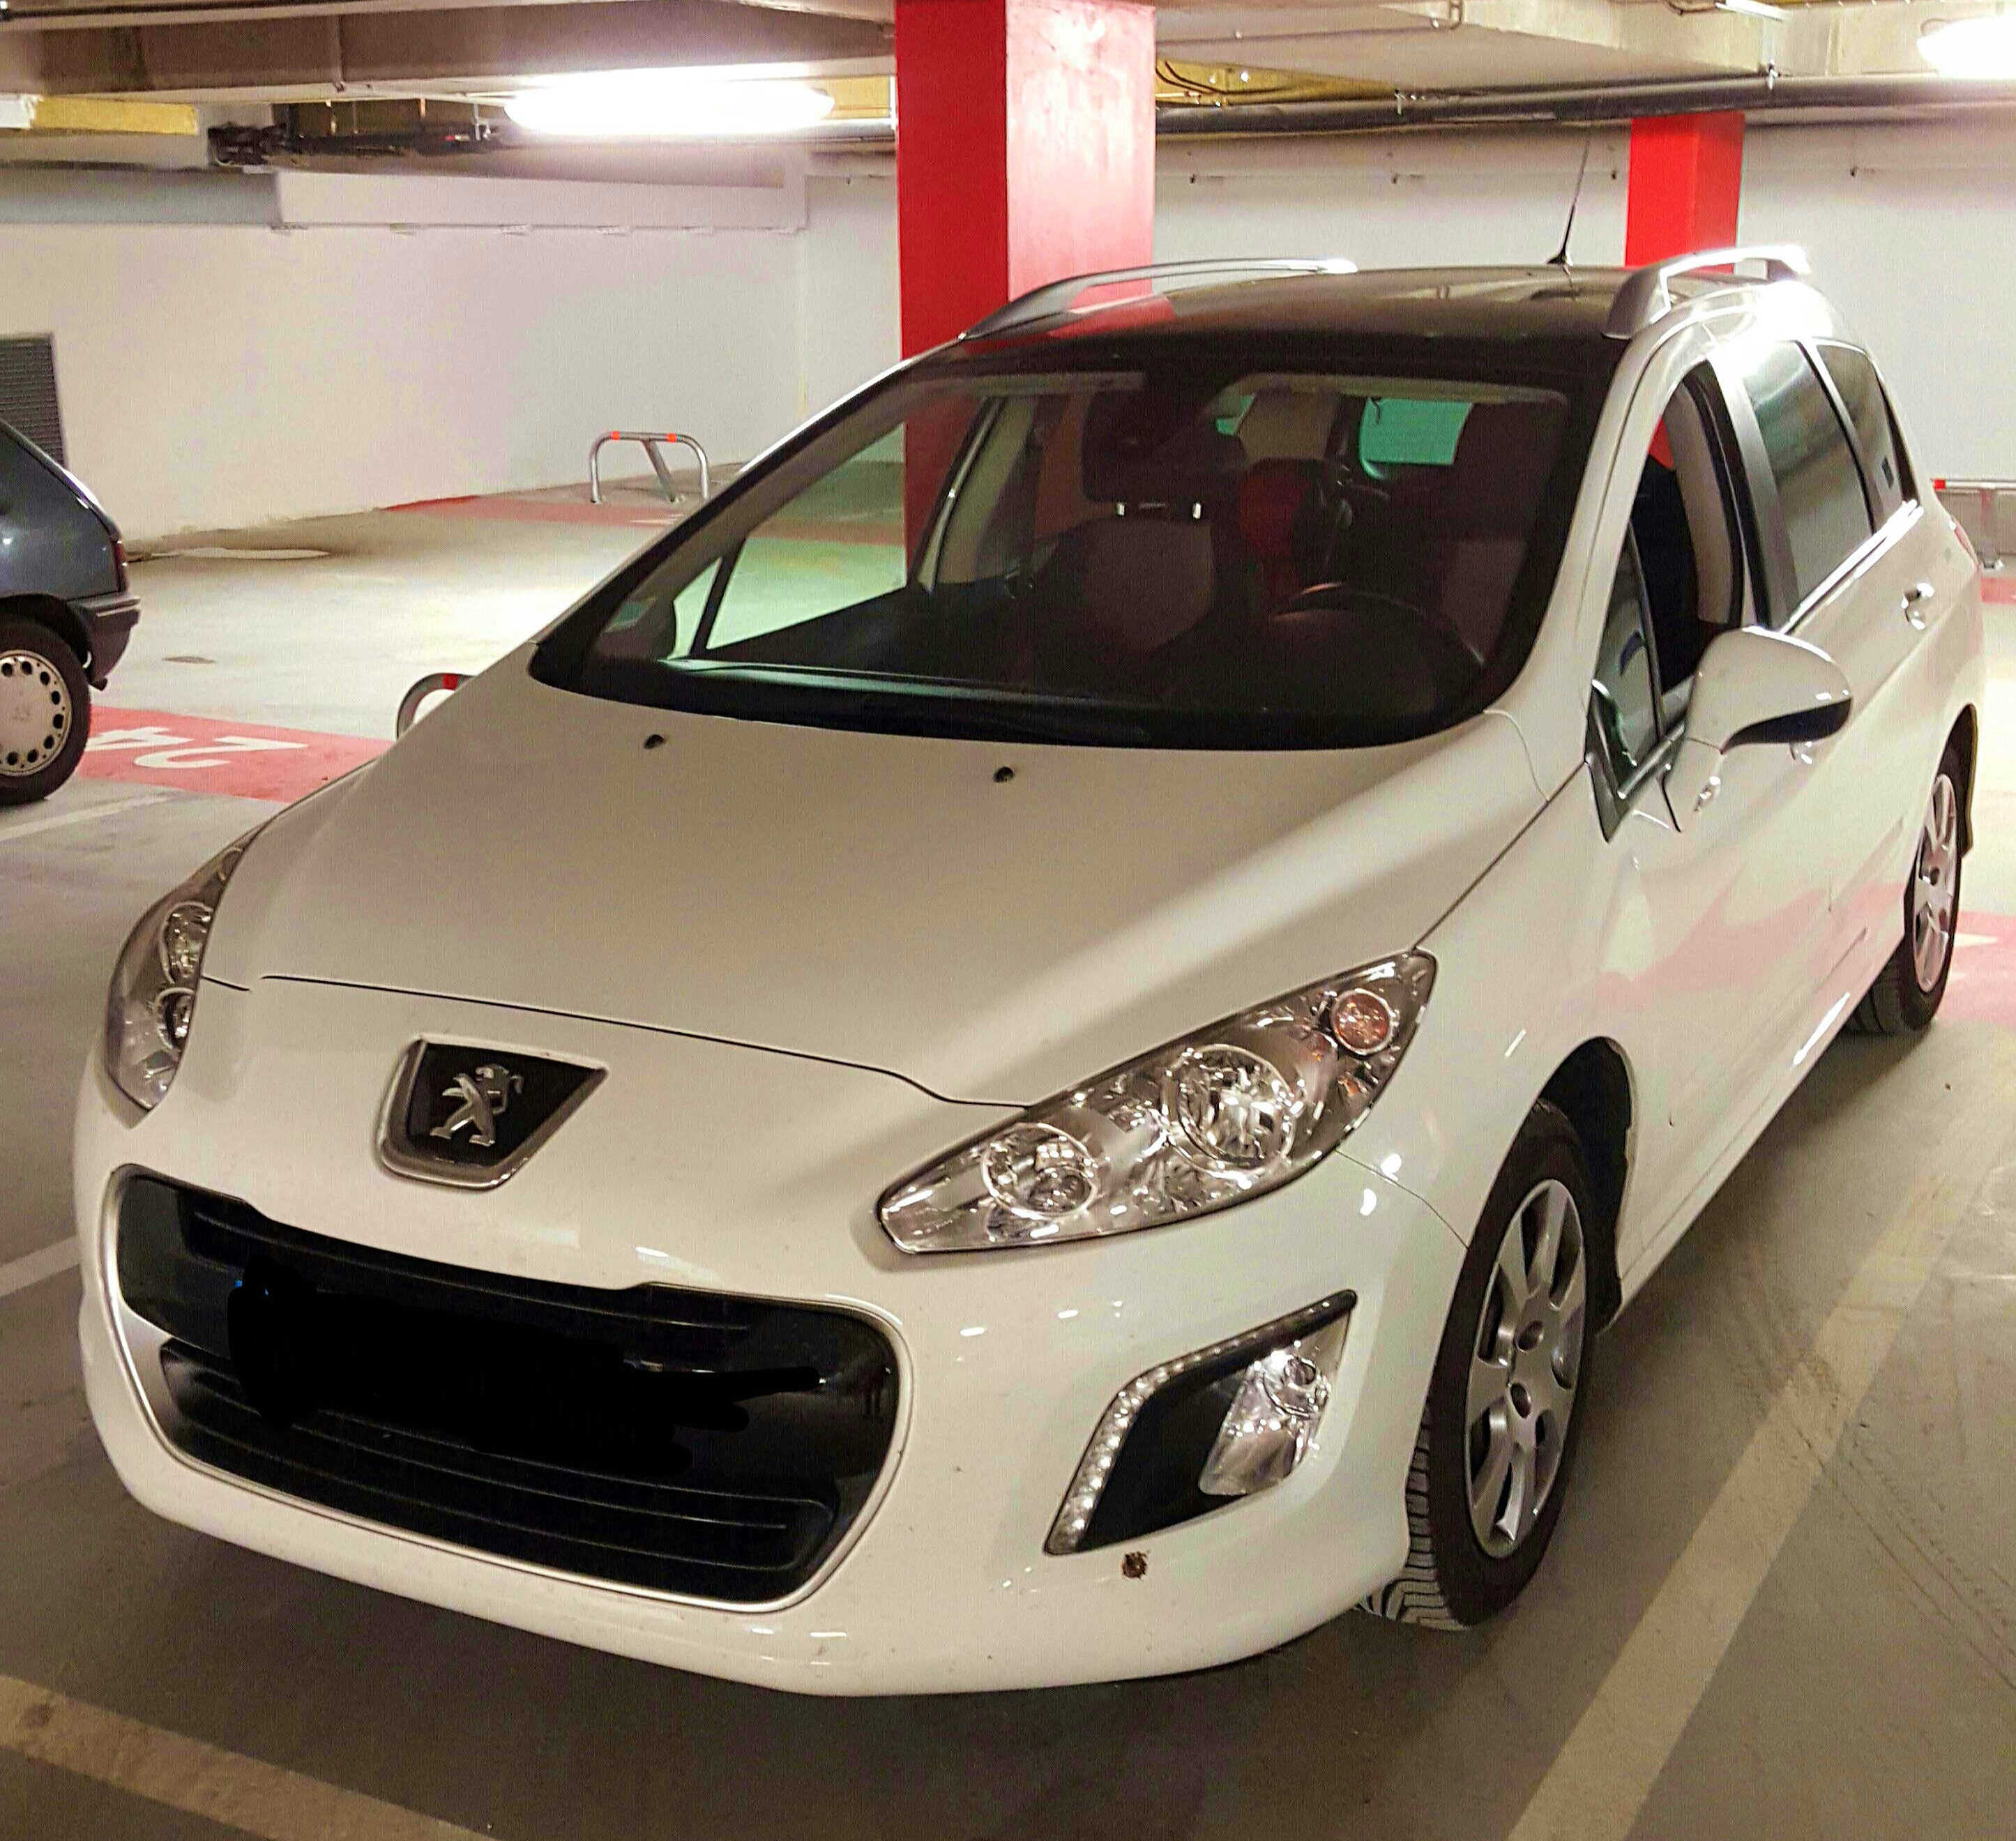 PEUGEOT 308sw 1.6 HDI92 Business Pack, 2012, Diesel